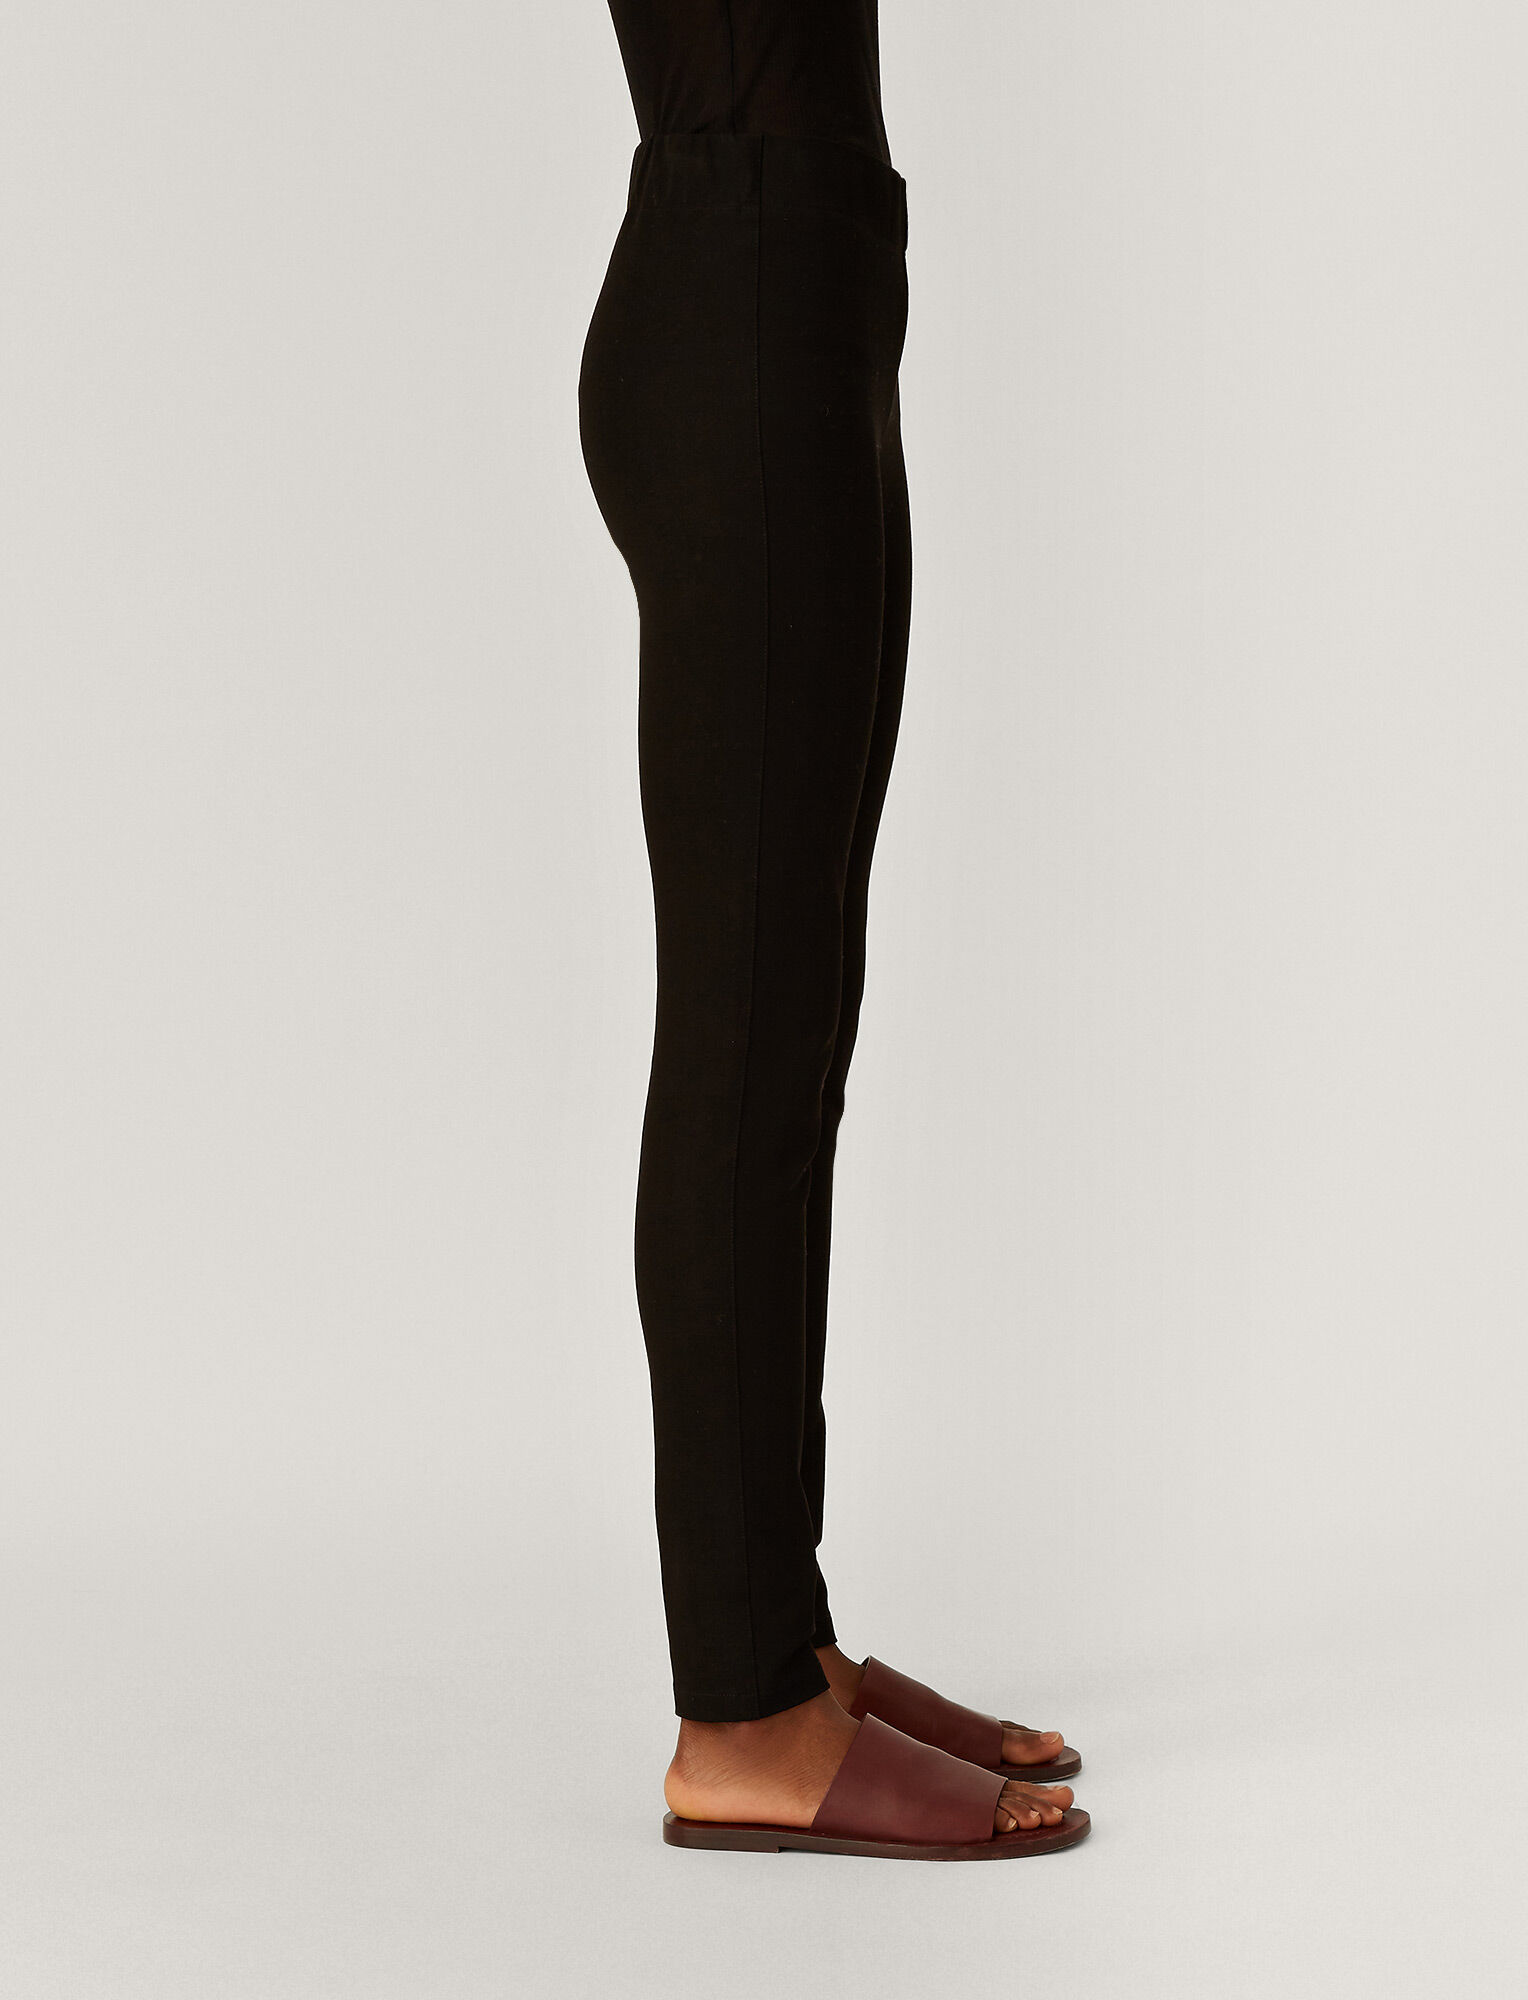 Joseph, Gabardine Stretch Legging, in BLACK